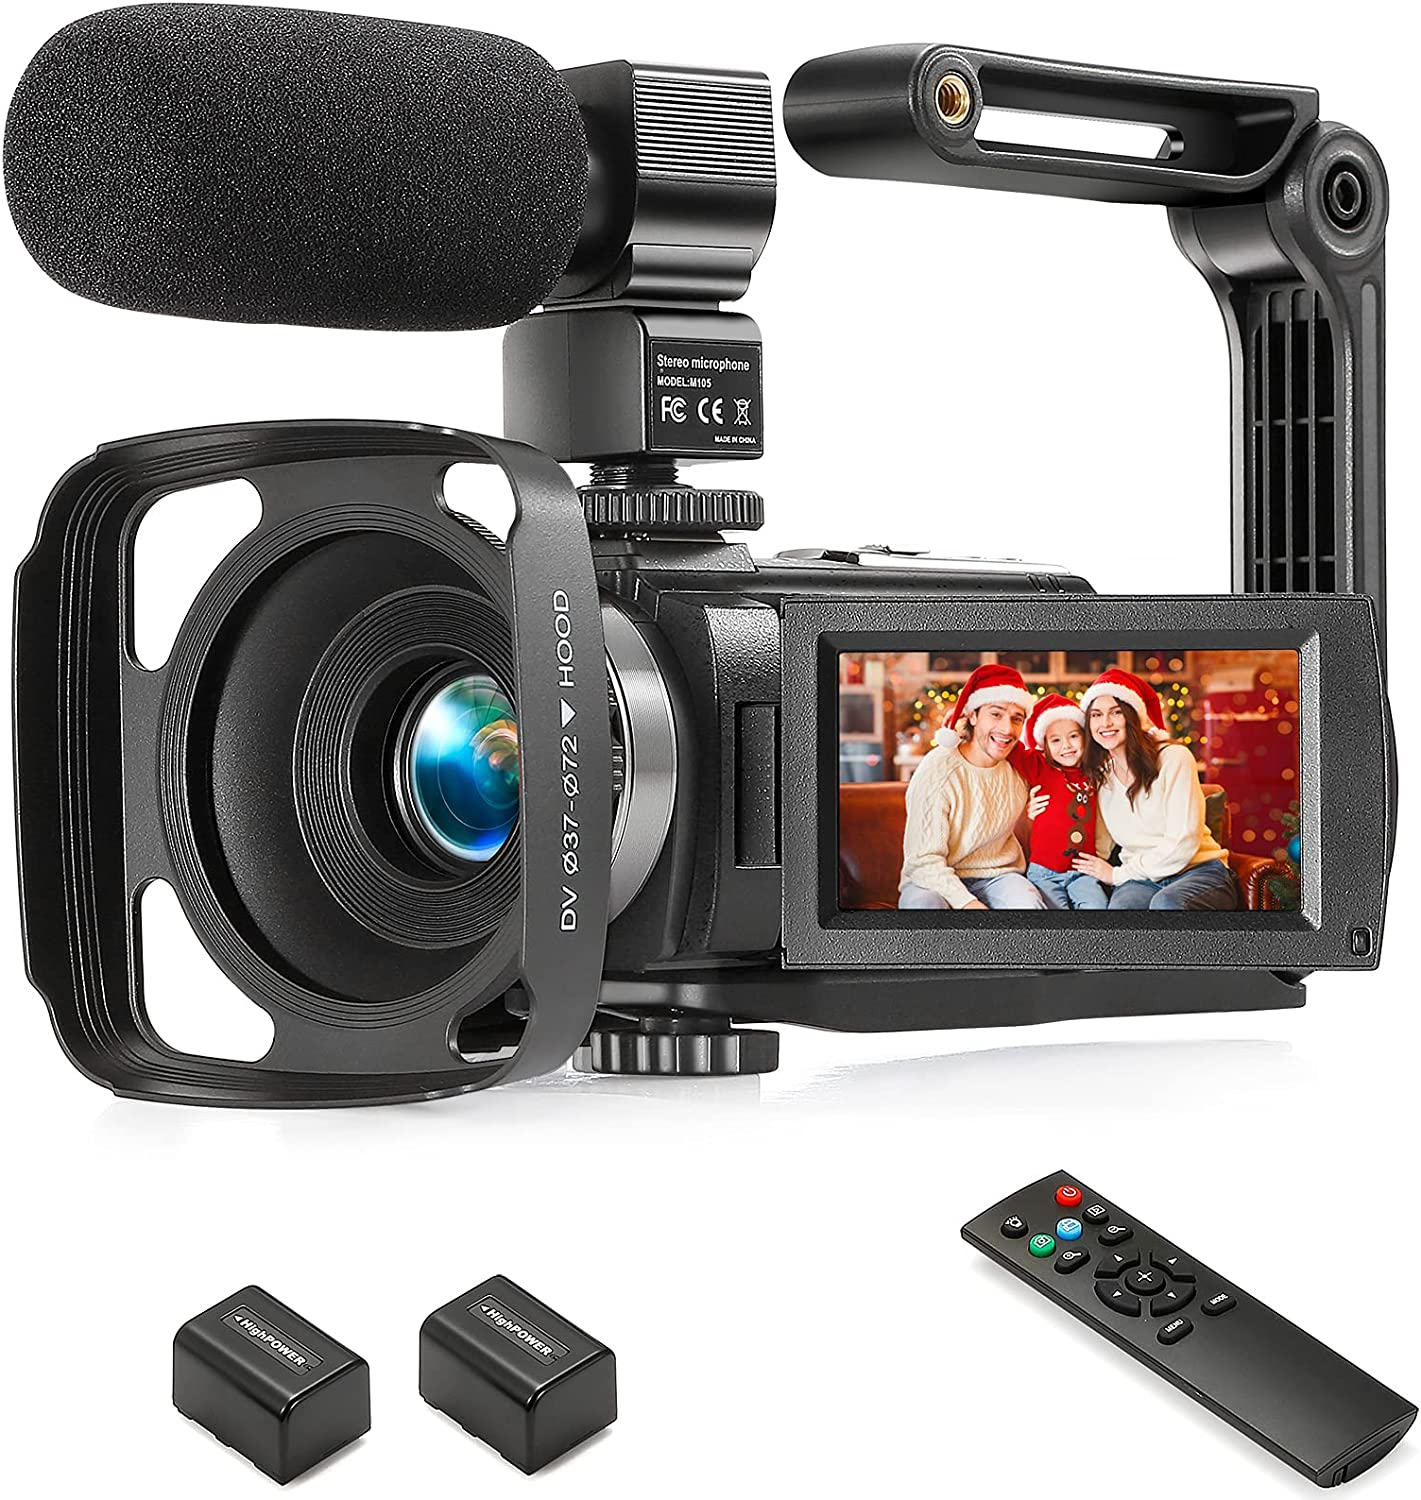 YEEHAO 1080p 36MP 16x Digital Zoom Video Camcorder $60 Coupon